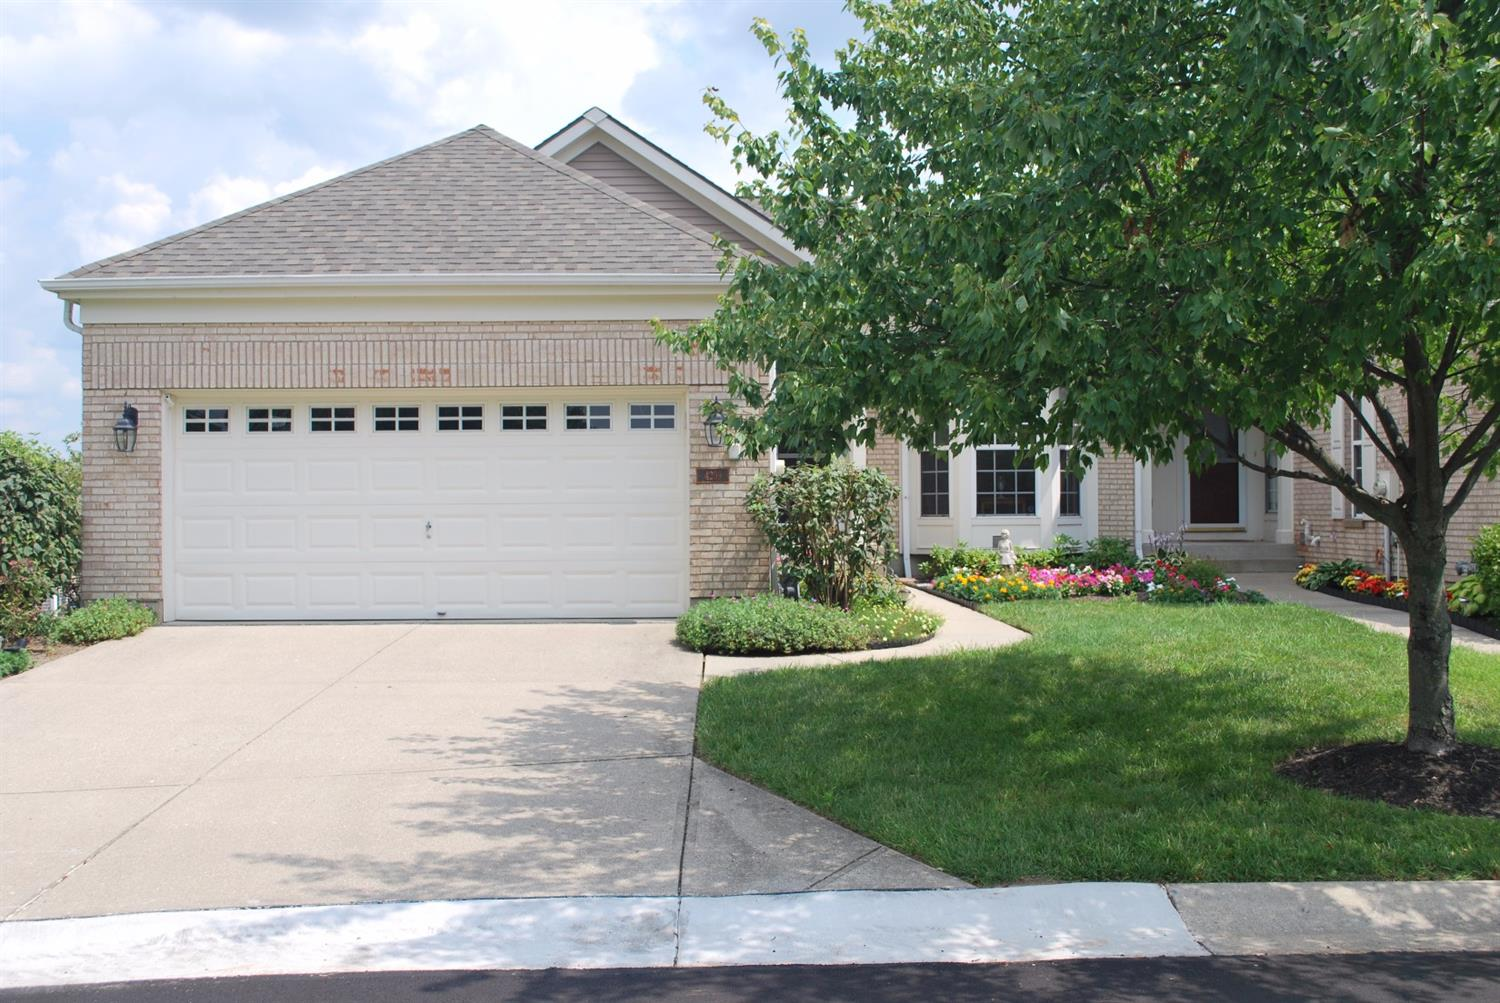 4299 Towneside Court, Mason, OH 45040